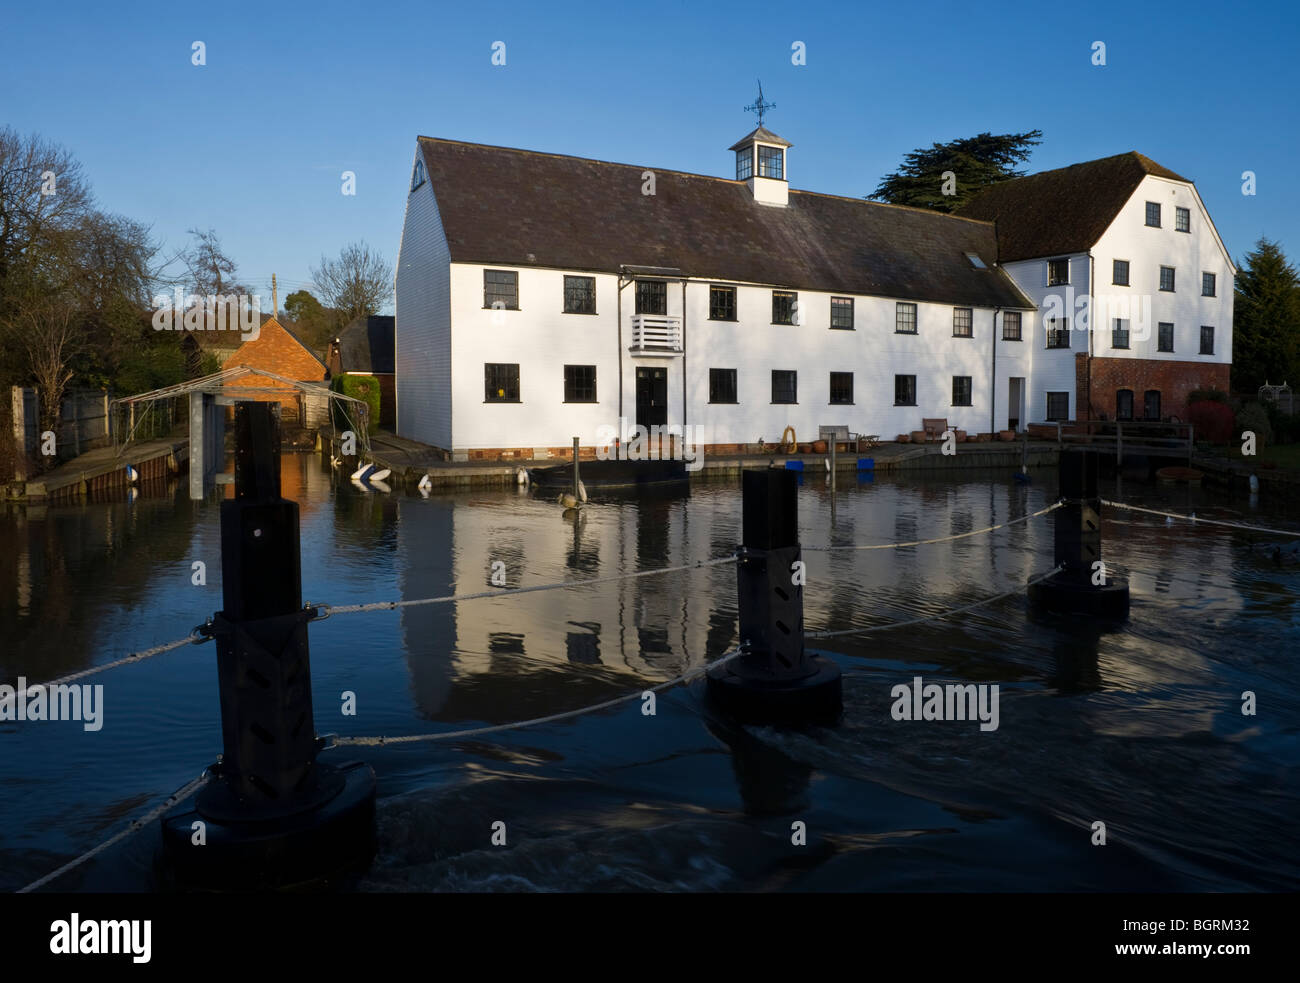 Hambleden Mill a riverside building on the River Thames in Winter - Stock Image